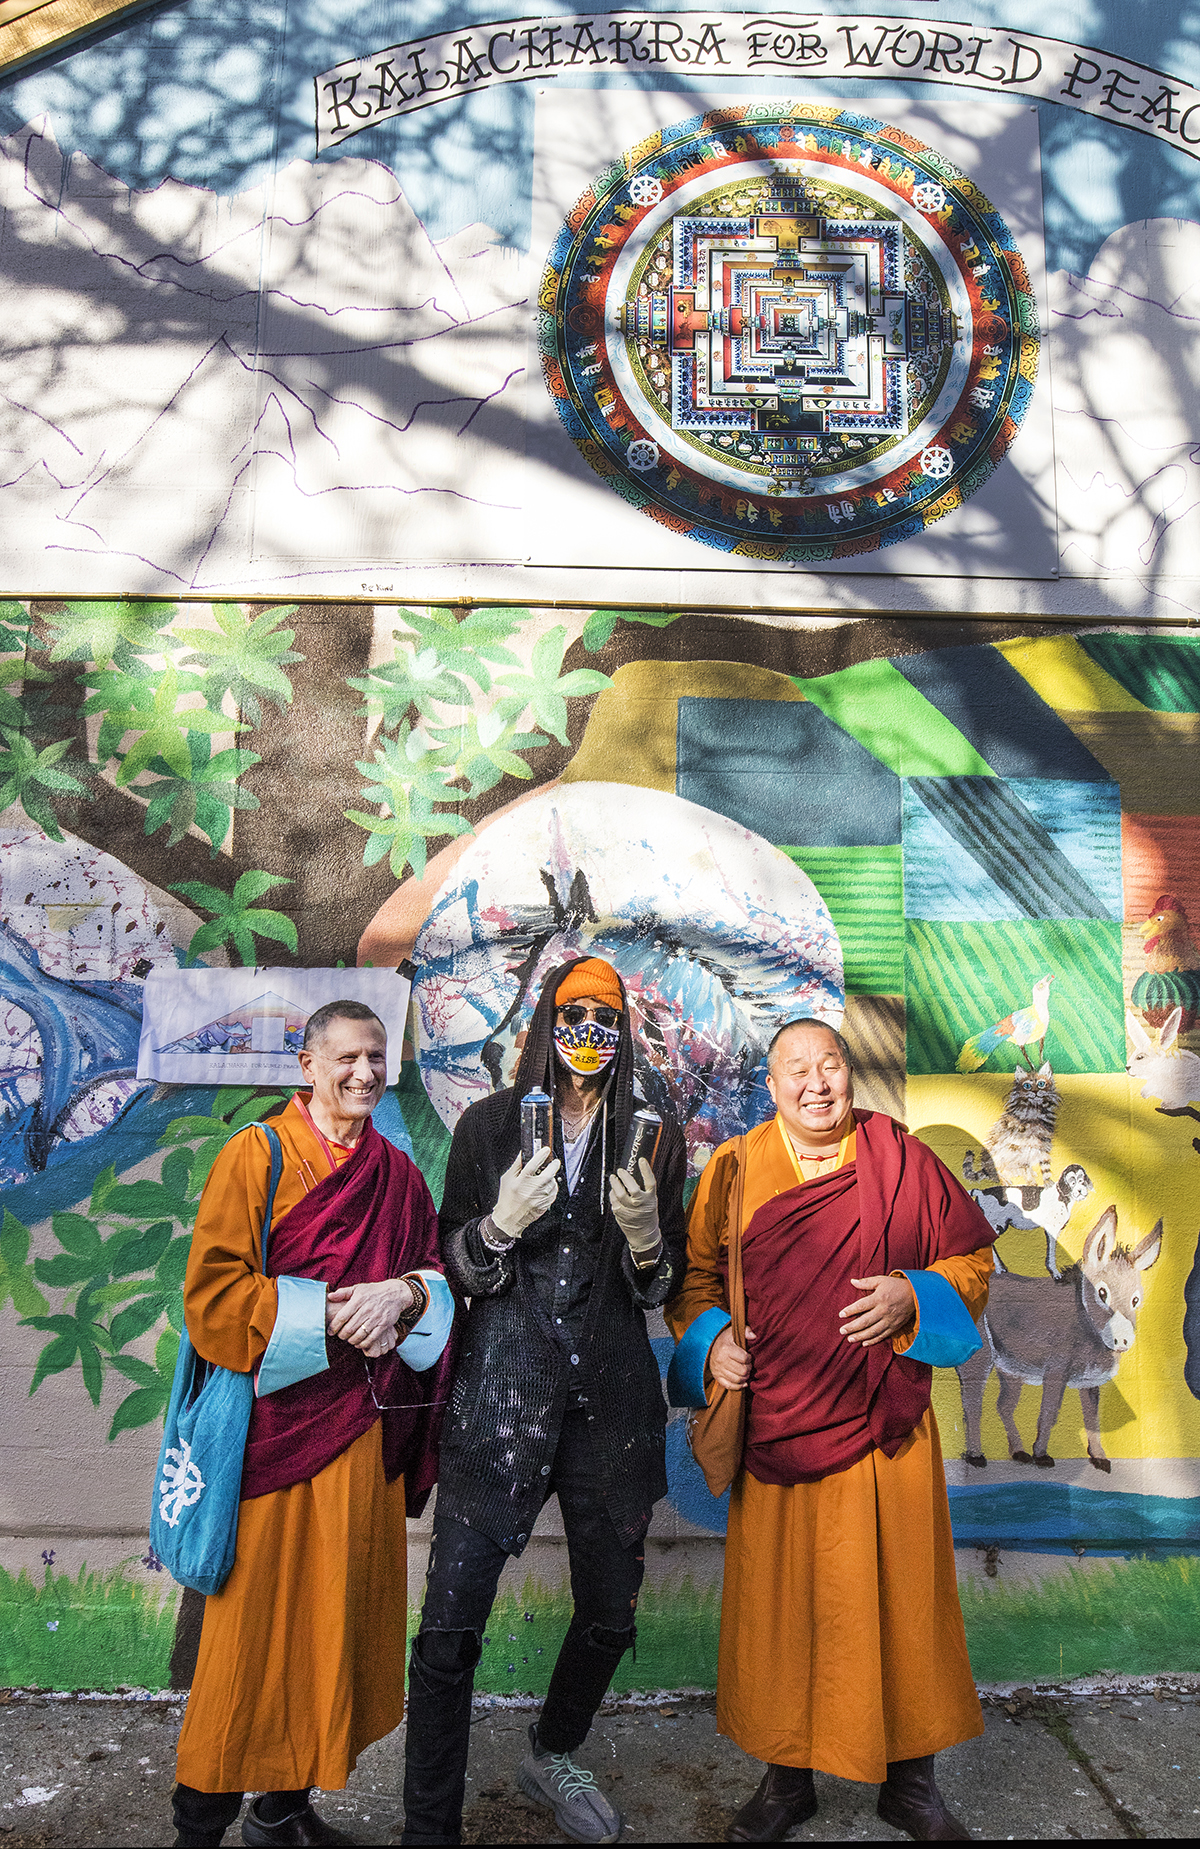 Geshe Damchoebaazar Gurjav in front of the mural and Kalachakra mandala during Losar 2021 celebrations at Do Nga Dargey temple sacramento california